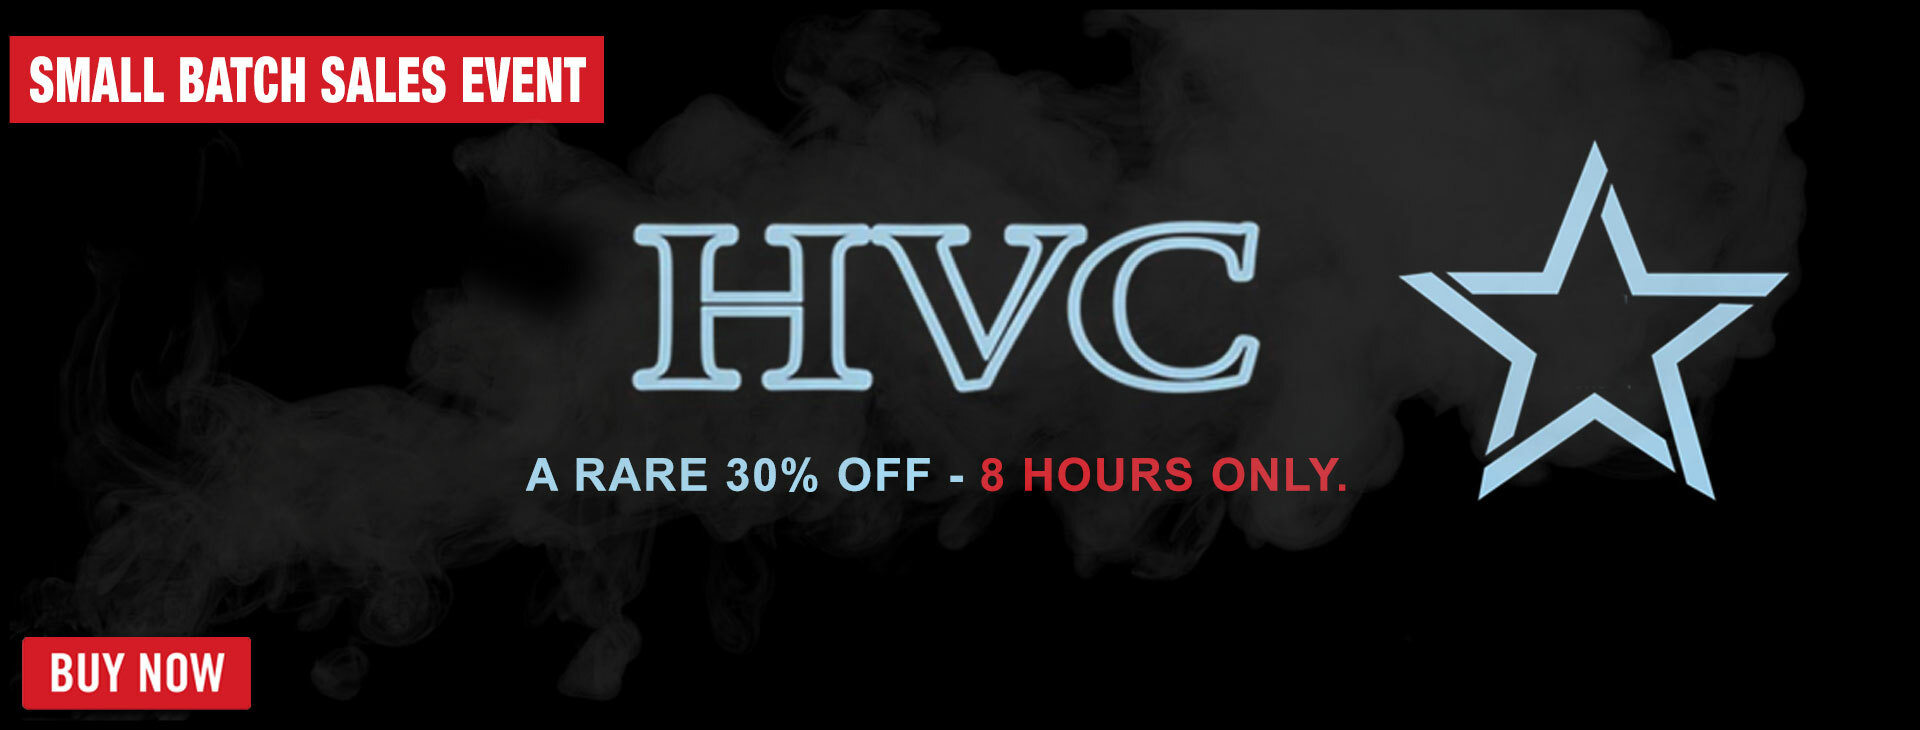 HVC CIGARS - 30% OFF FOR 8 HOURS!